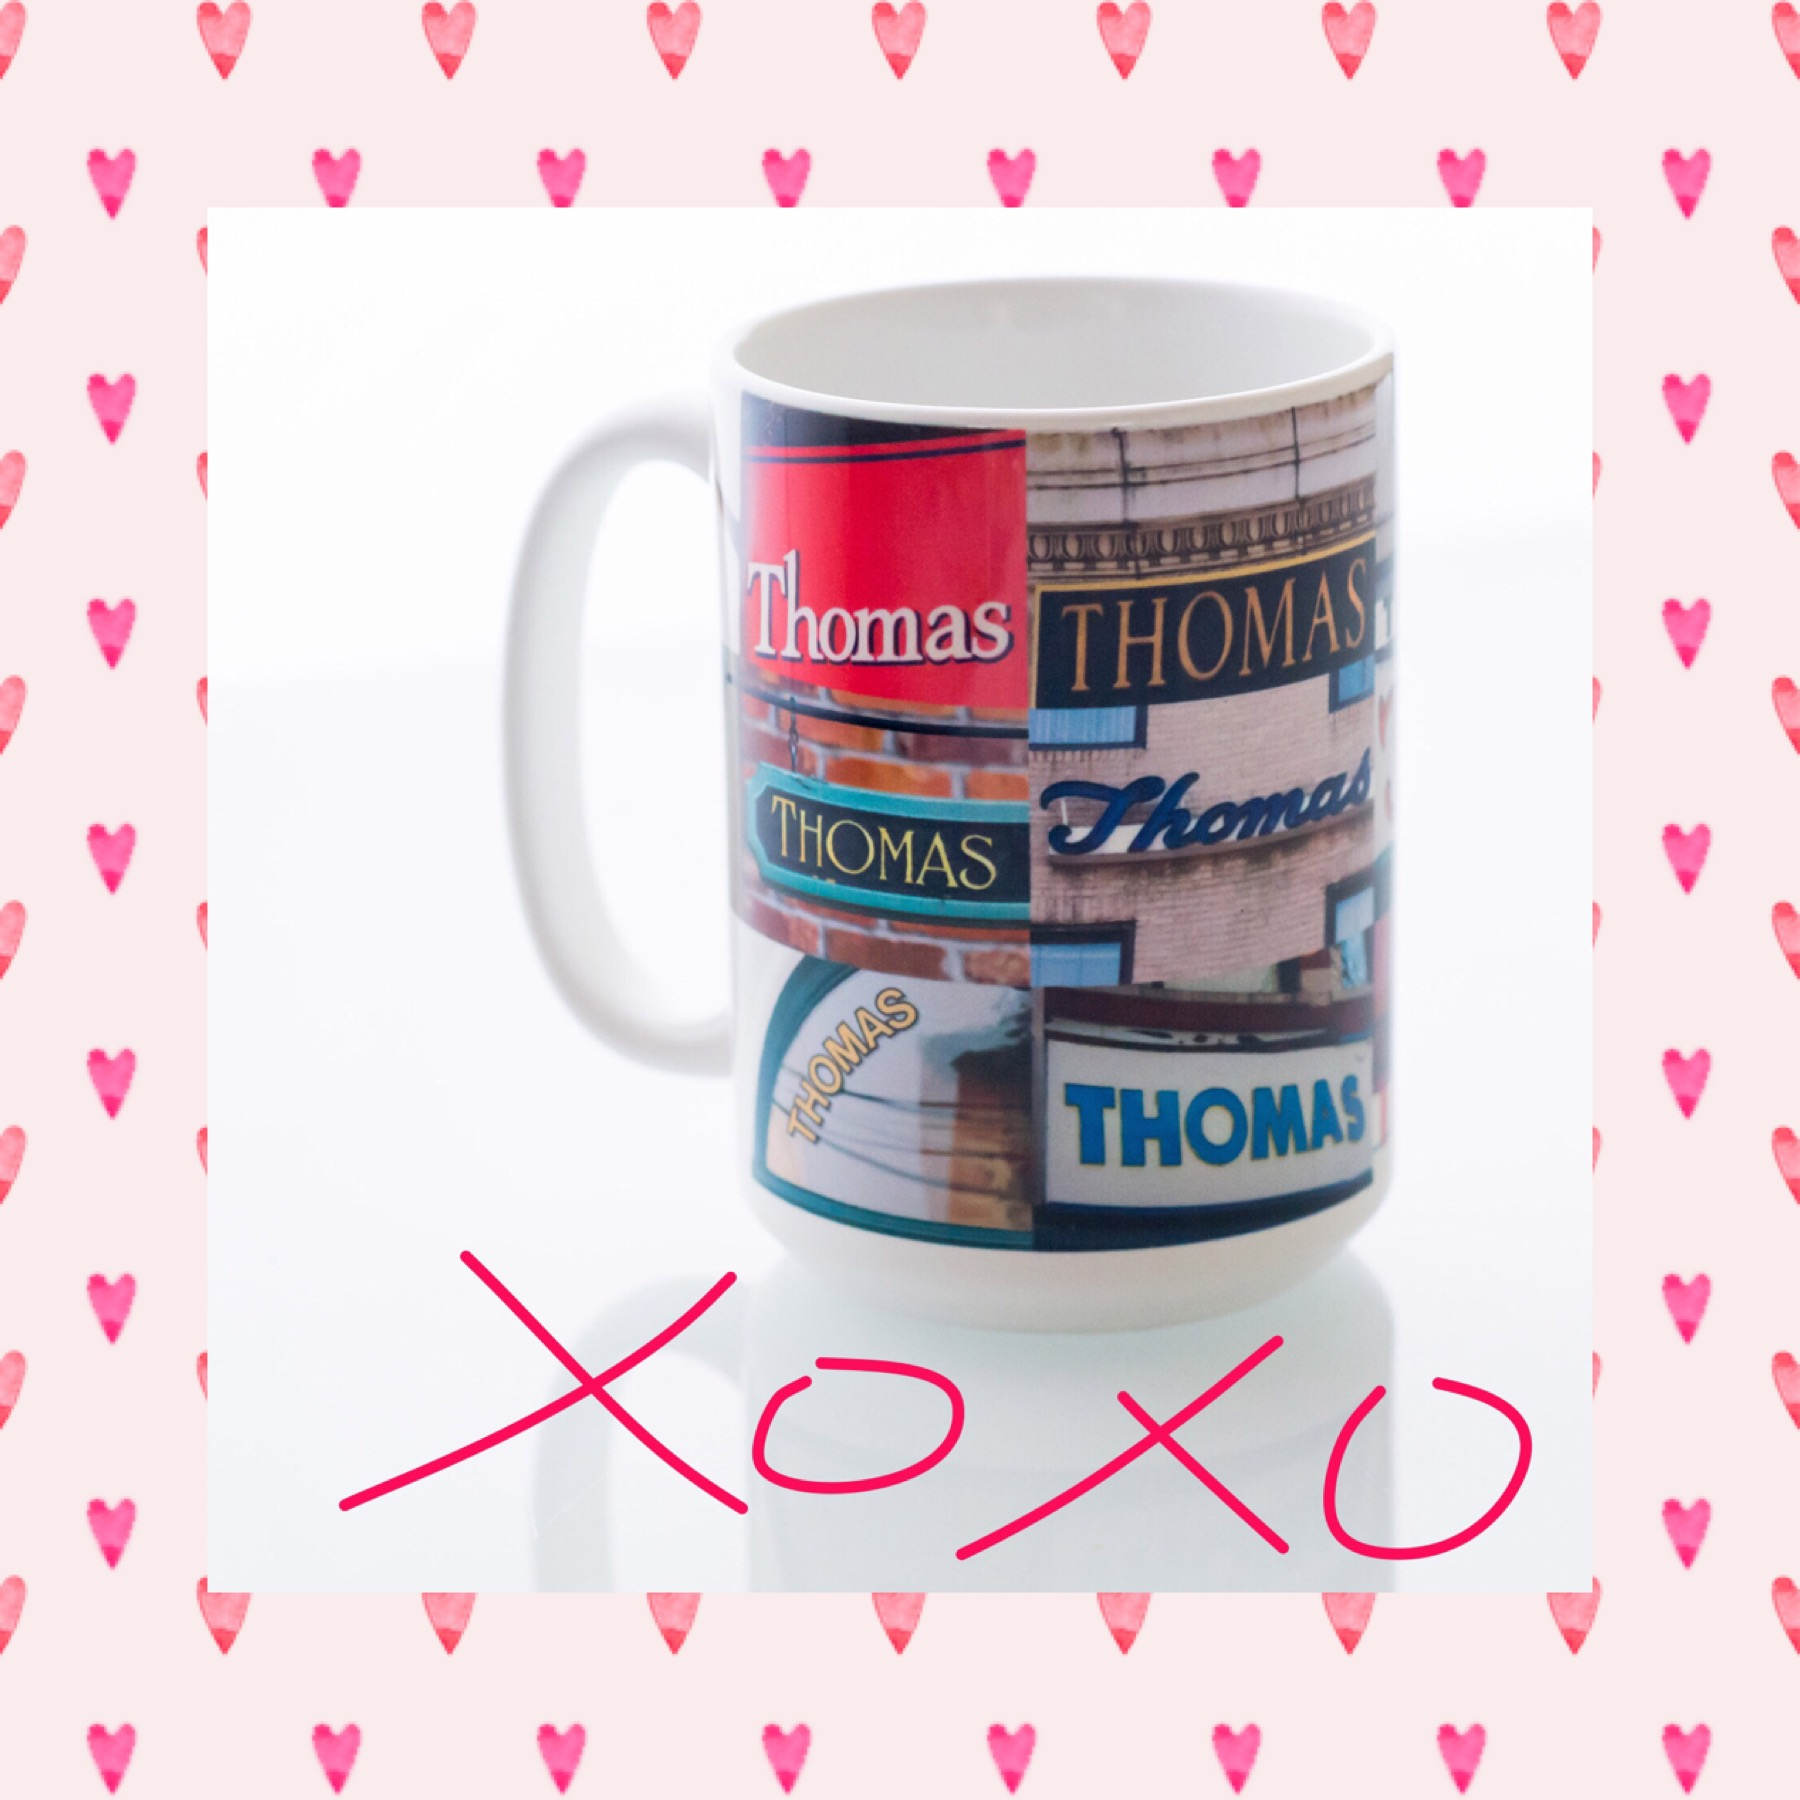 https://www.etsy.com/listing/204159935/personalized-coffee-mug-featuring-the?ref=shop_home_active_2&ga_search_query=thomas